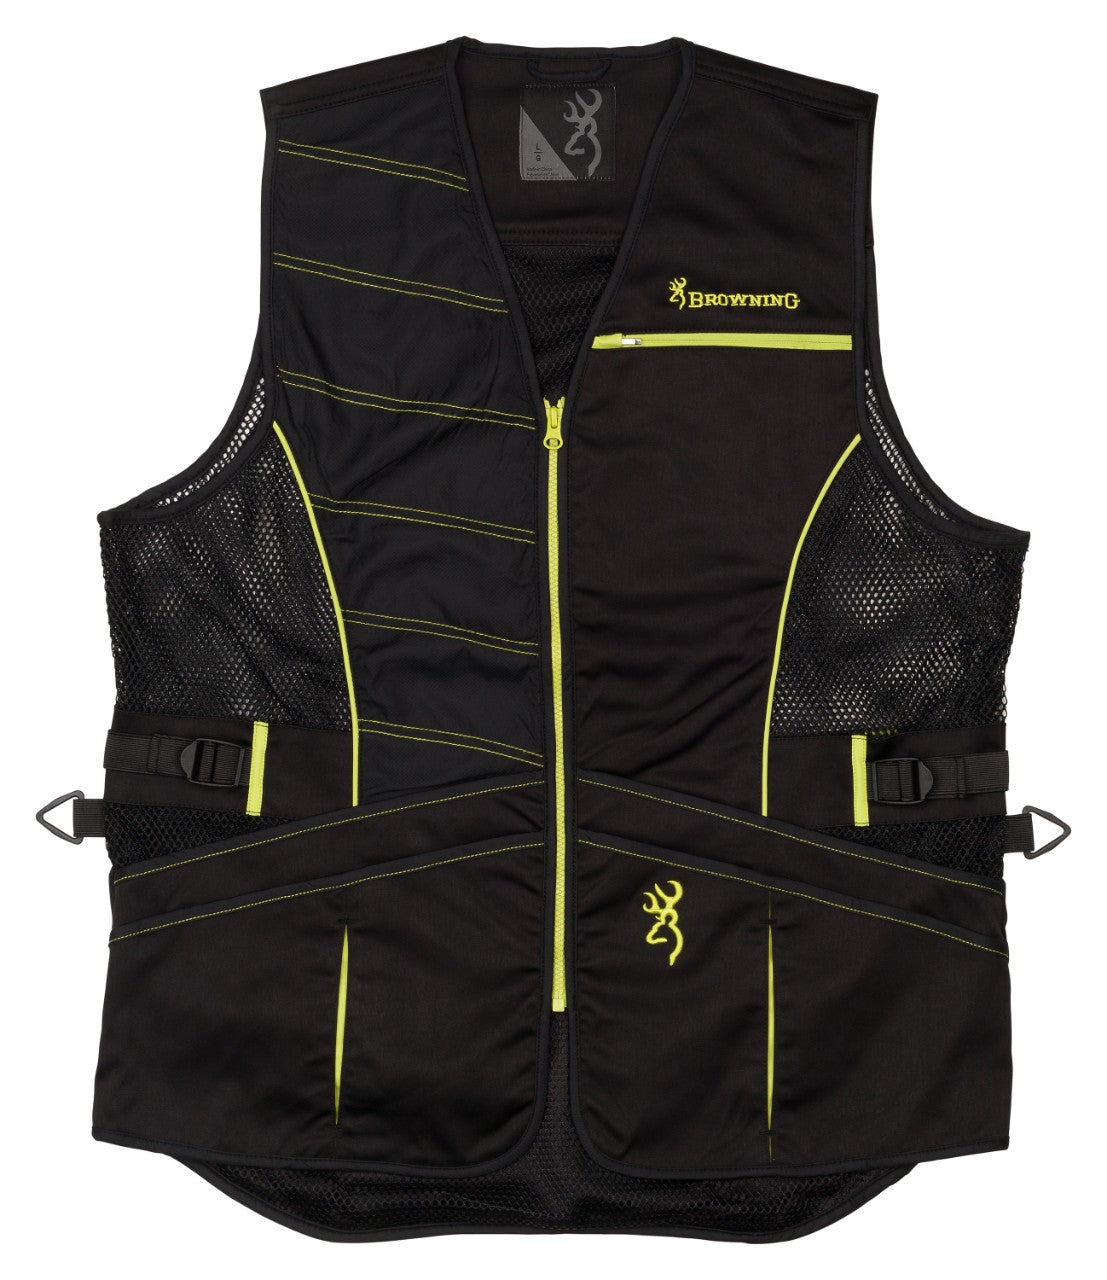 VST,ACE,BLACK/VOLT,2XL